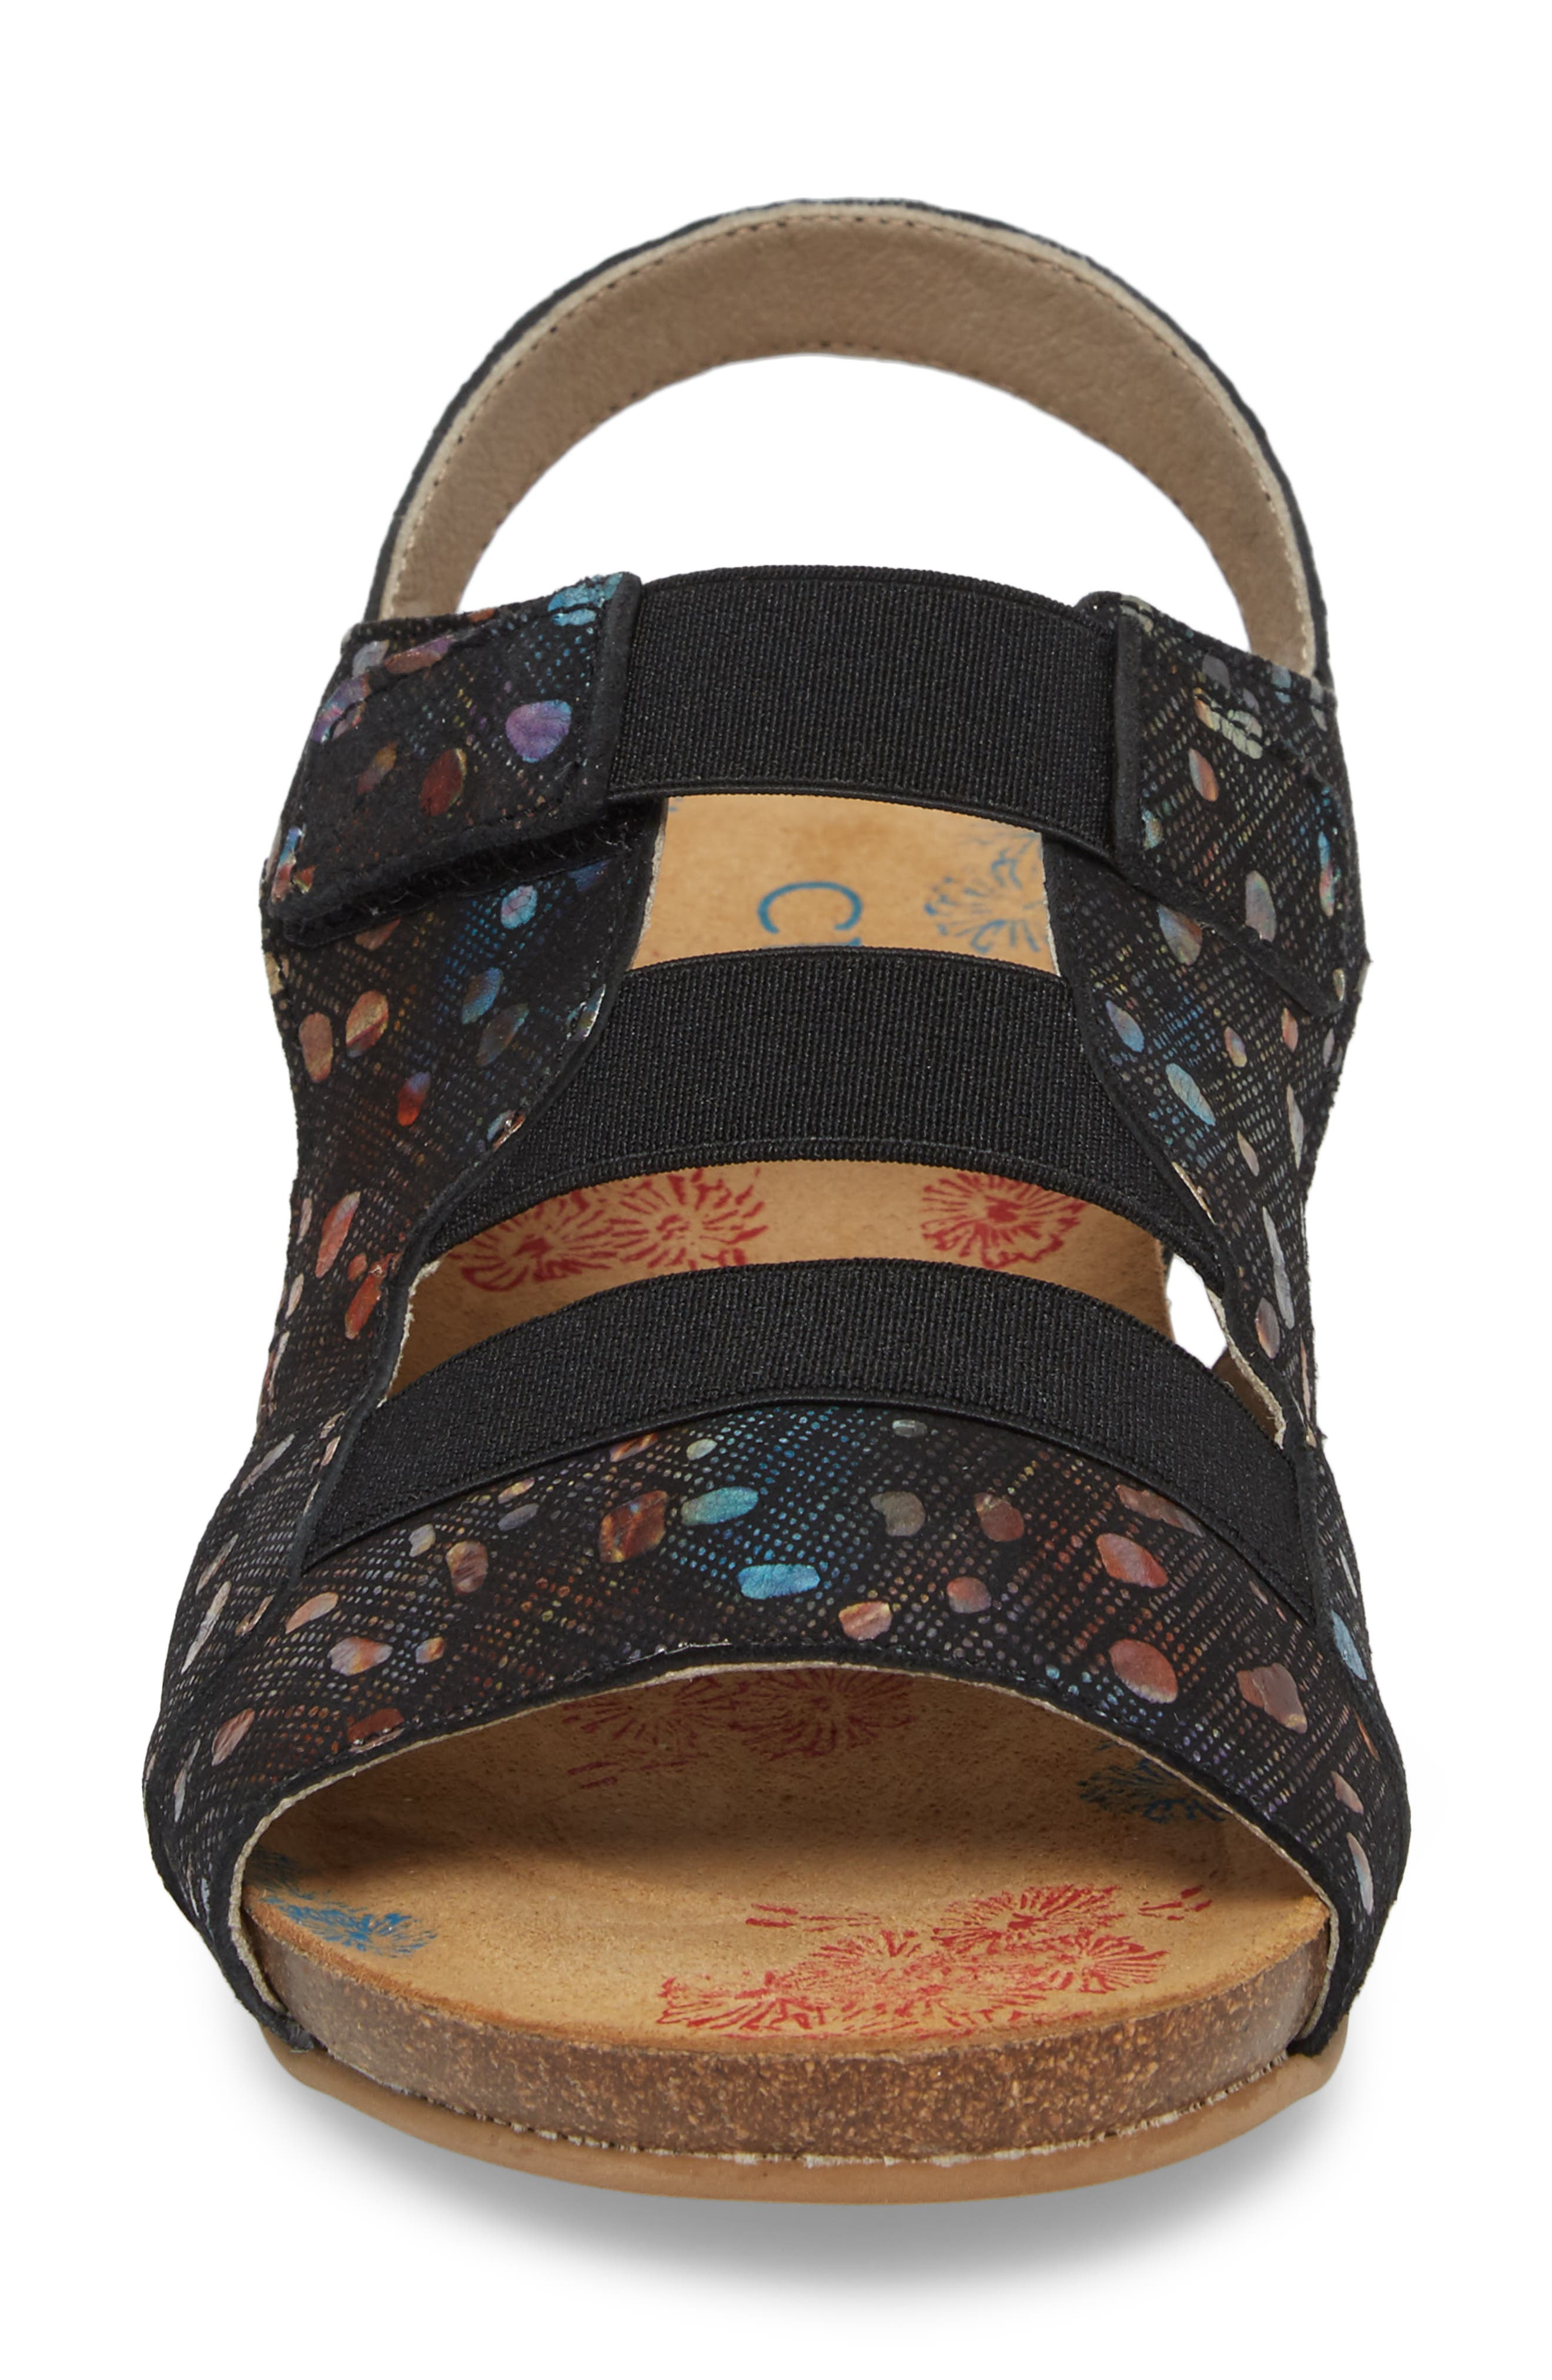 Duffy Wedge Sandal,                             Alternate thumbnail 4, color,                             BUBBLE LEATHER